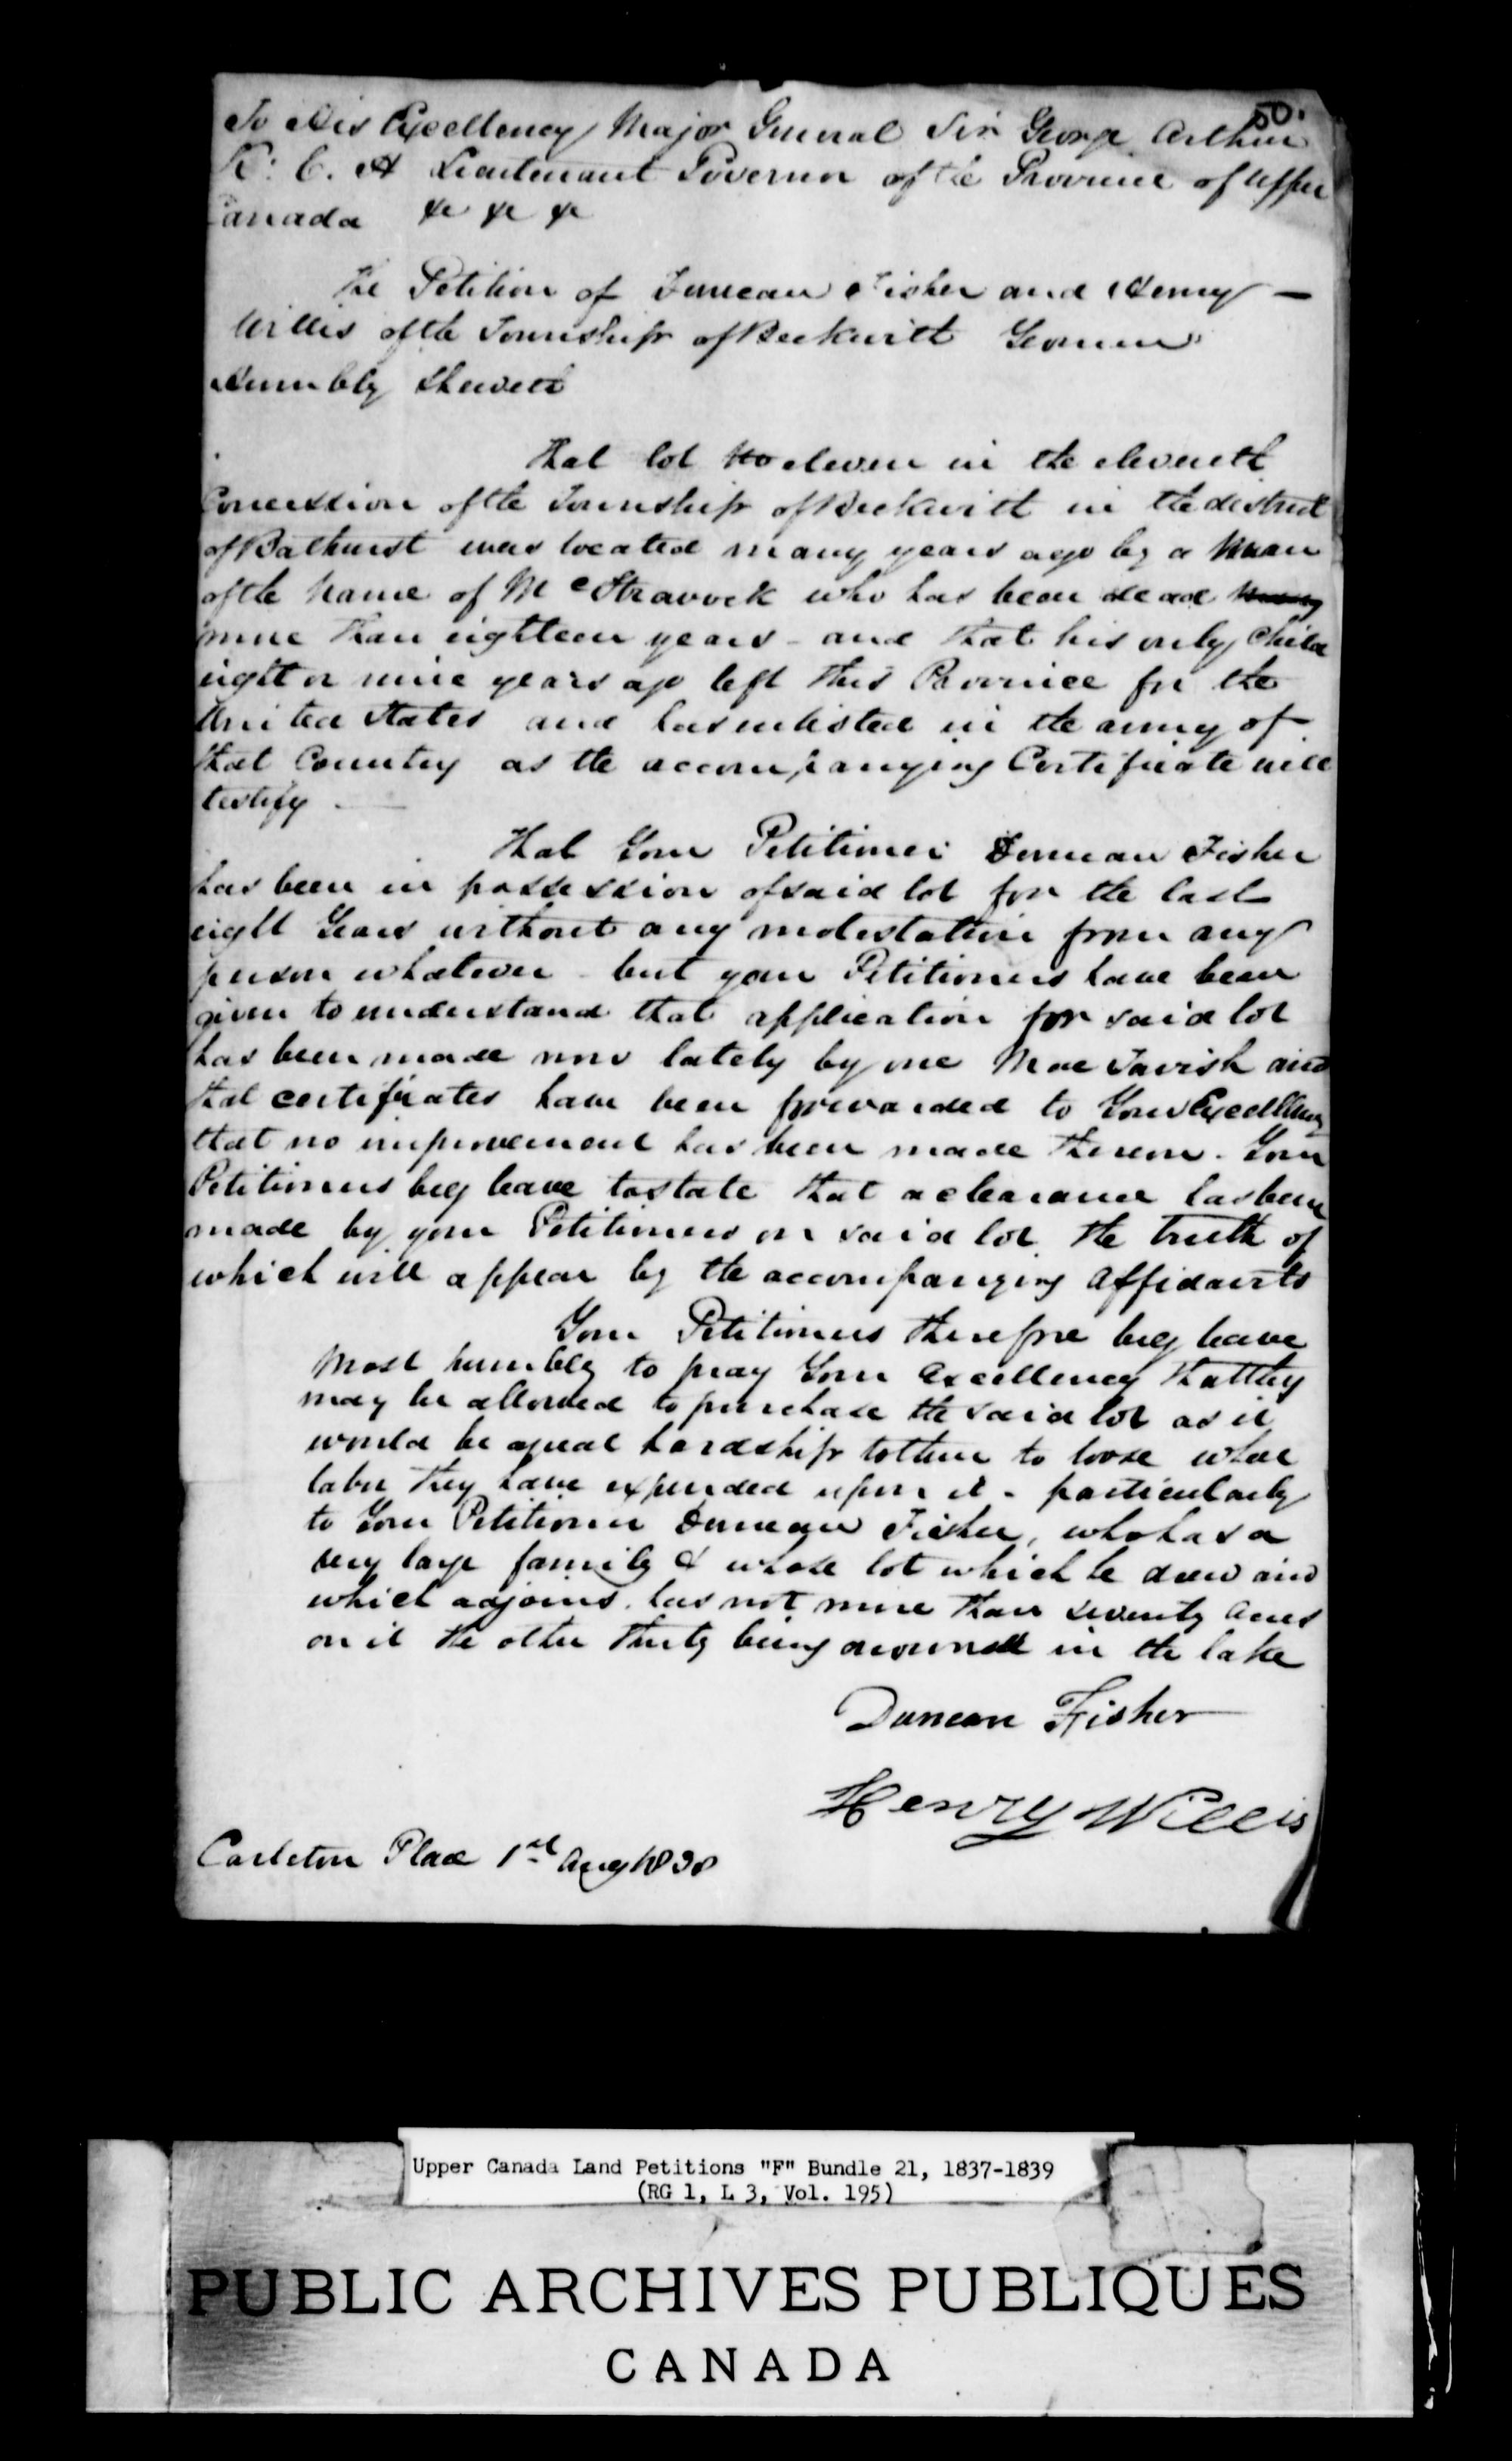 Title: Upper Canada Land Petitions (1763-1865) - Mikan Number: 205131 - Microform: c-1900